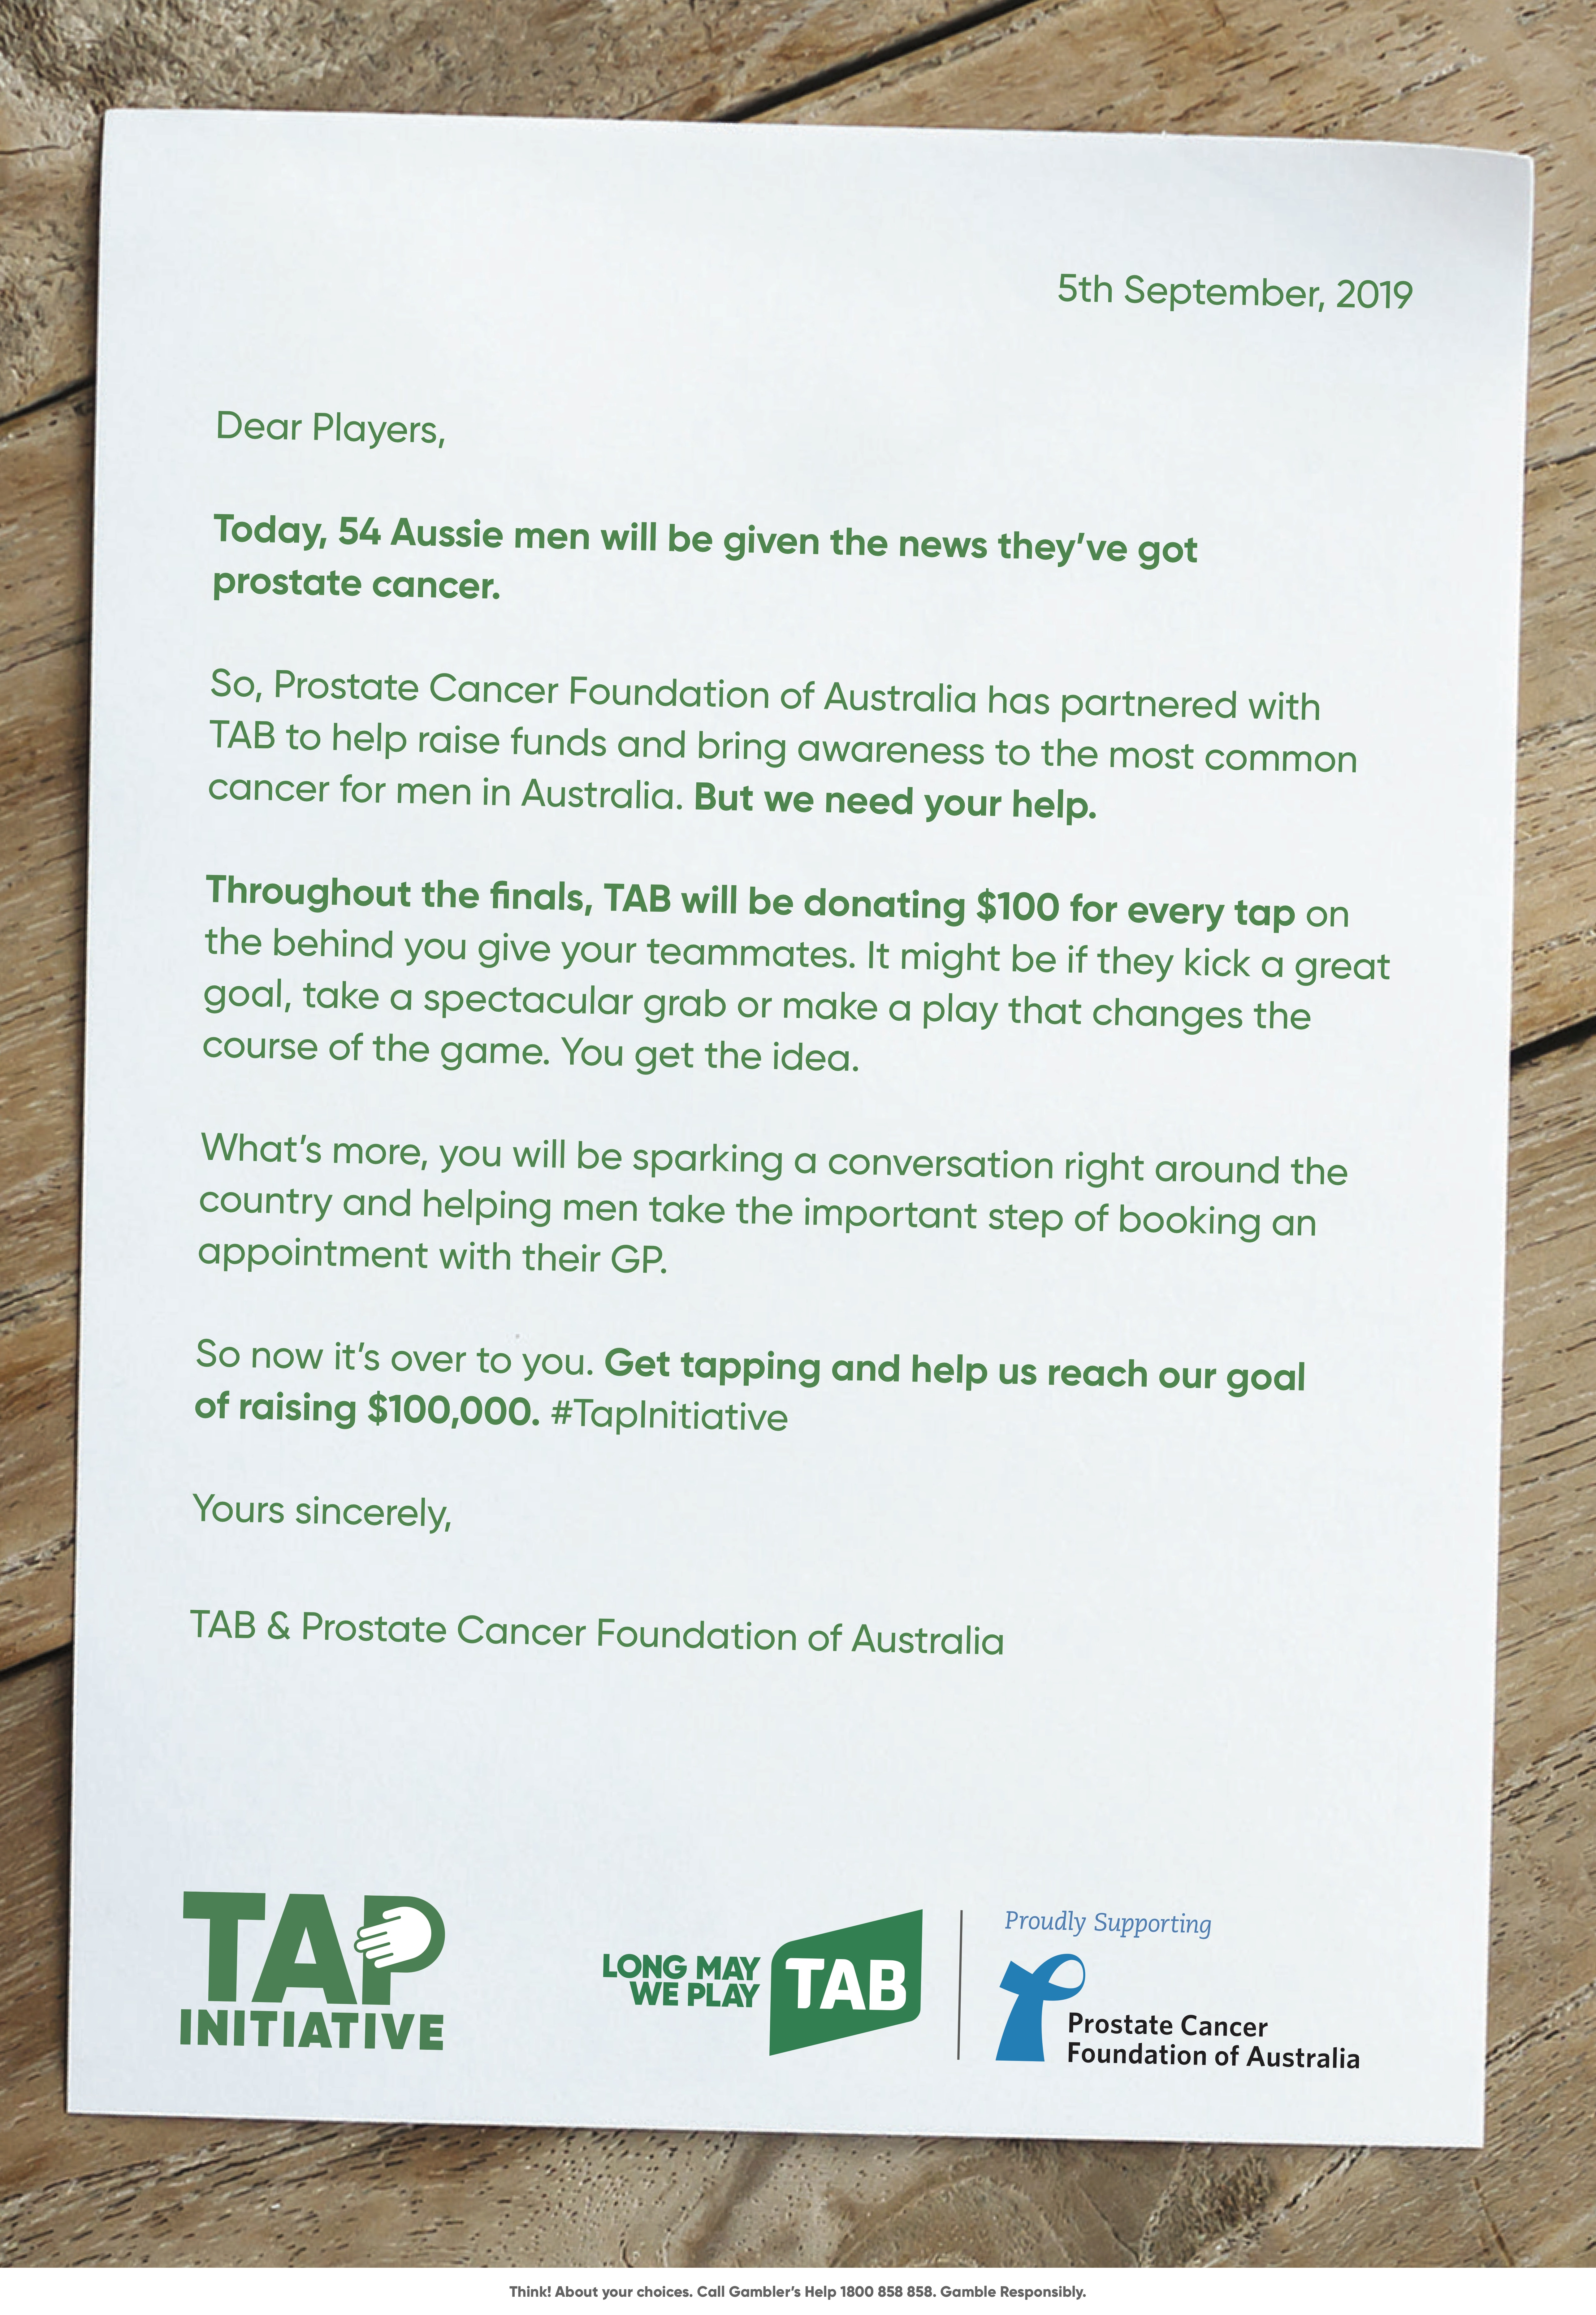 TAB launches new 'Tap Initiative' campaign for prostate cancer awareness via M&C Saatchi